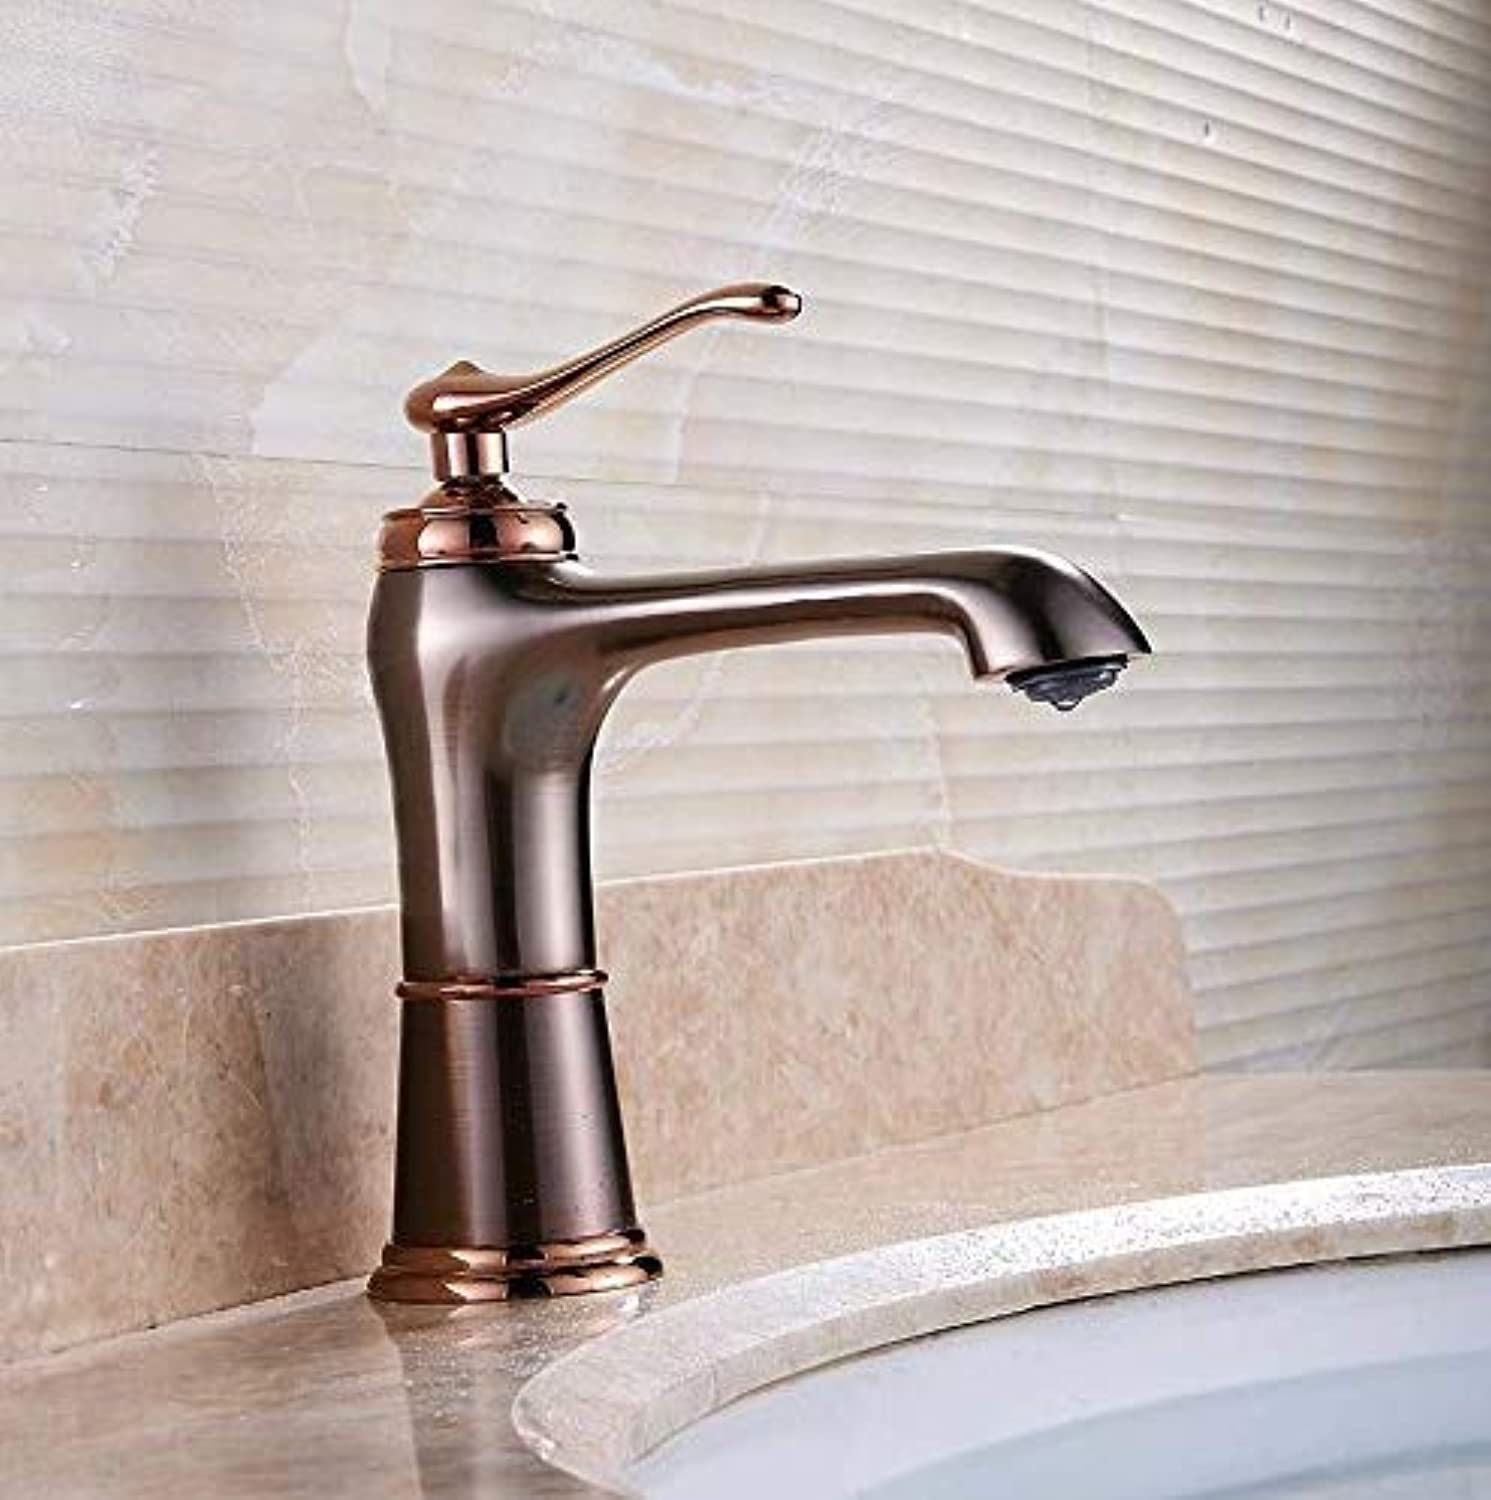 Basin Faucet Retro Faucet Brass Bathroom Basin Mixer Tap Oil Rubbed Bronze Tap Bathroom Faucet Hot and Cold Water Basin Faucet